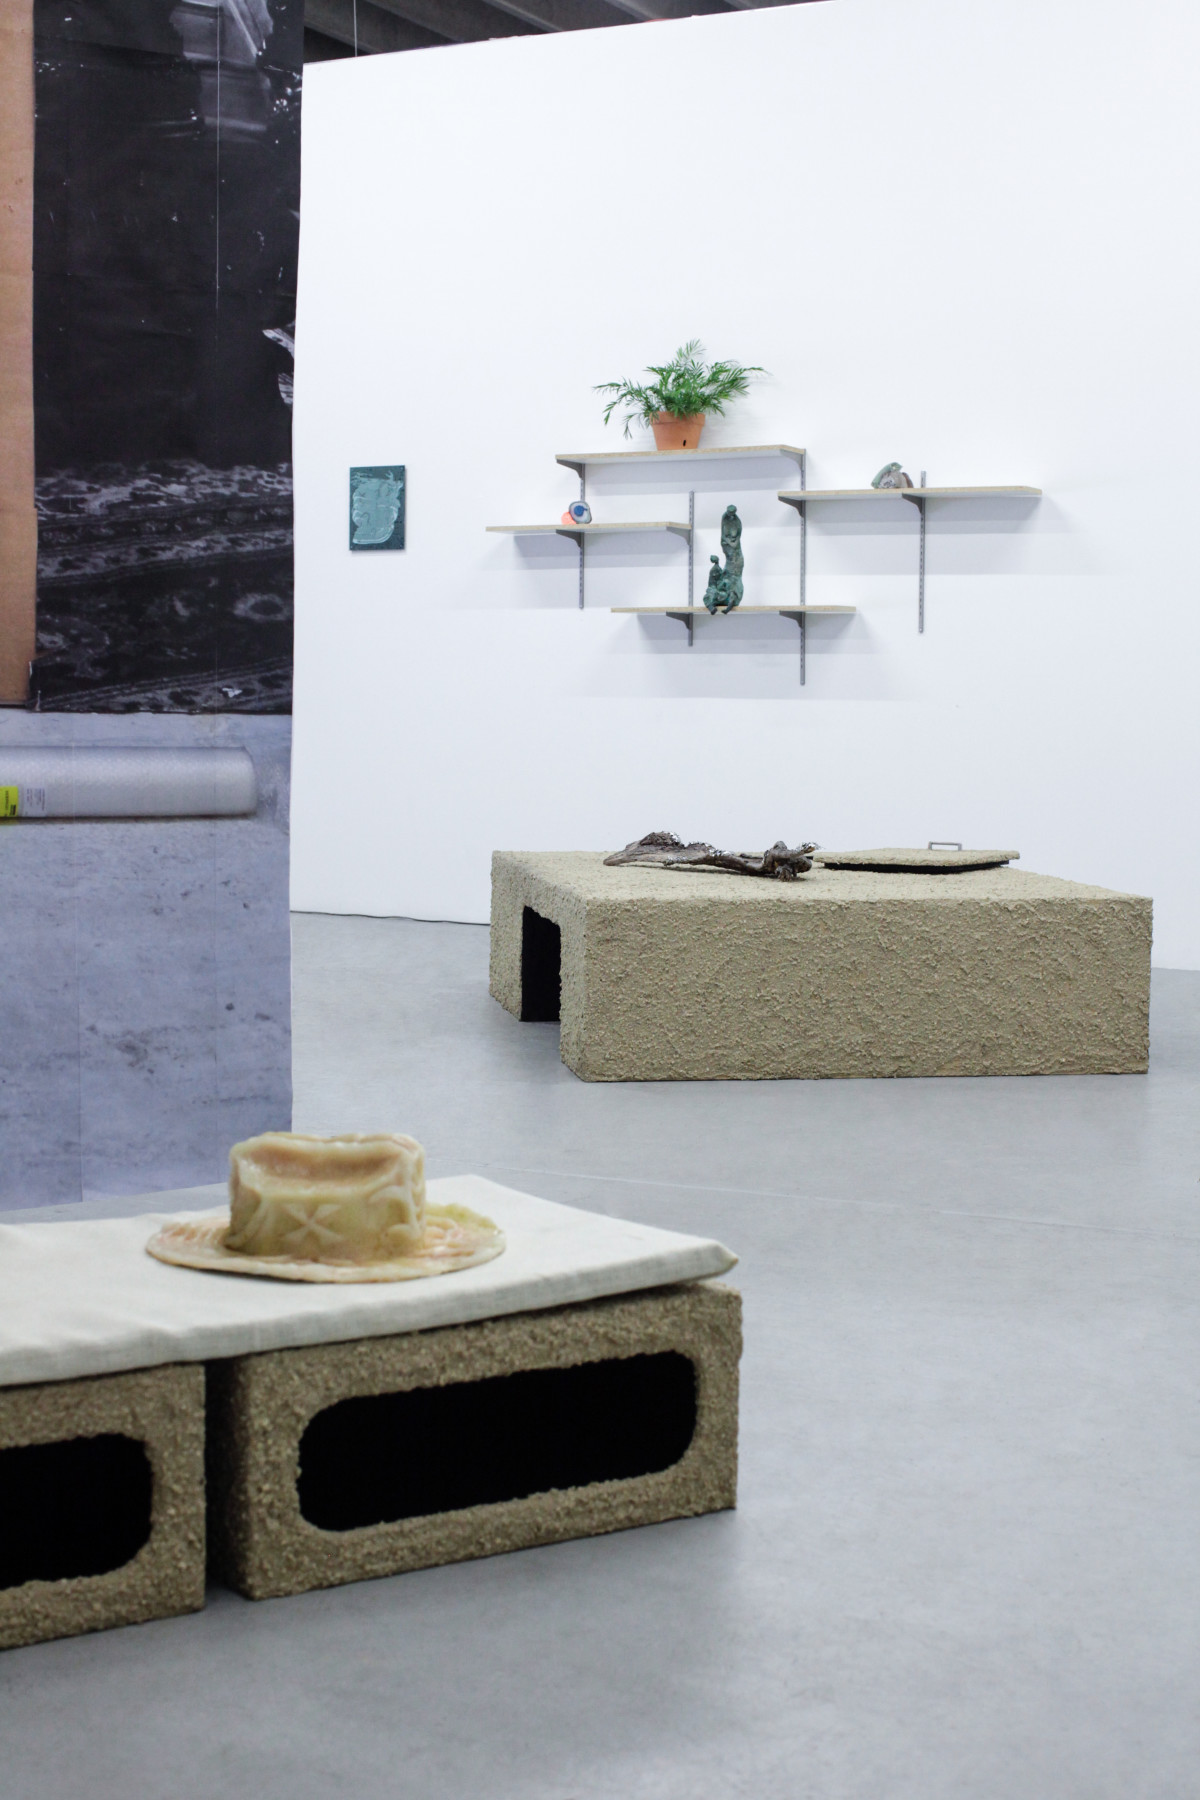 PĿΛNΞS, a curatorial project by Anna Frost and Annika